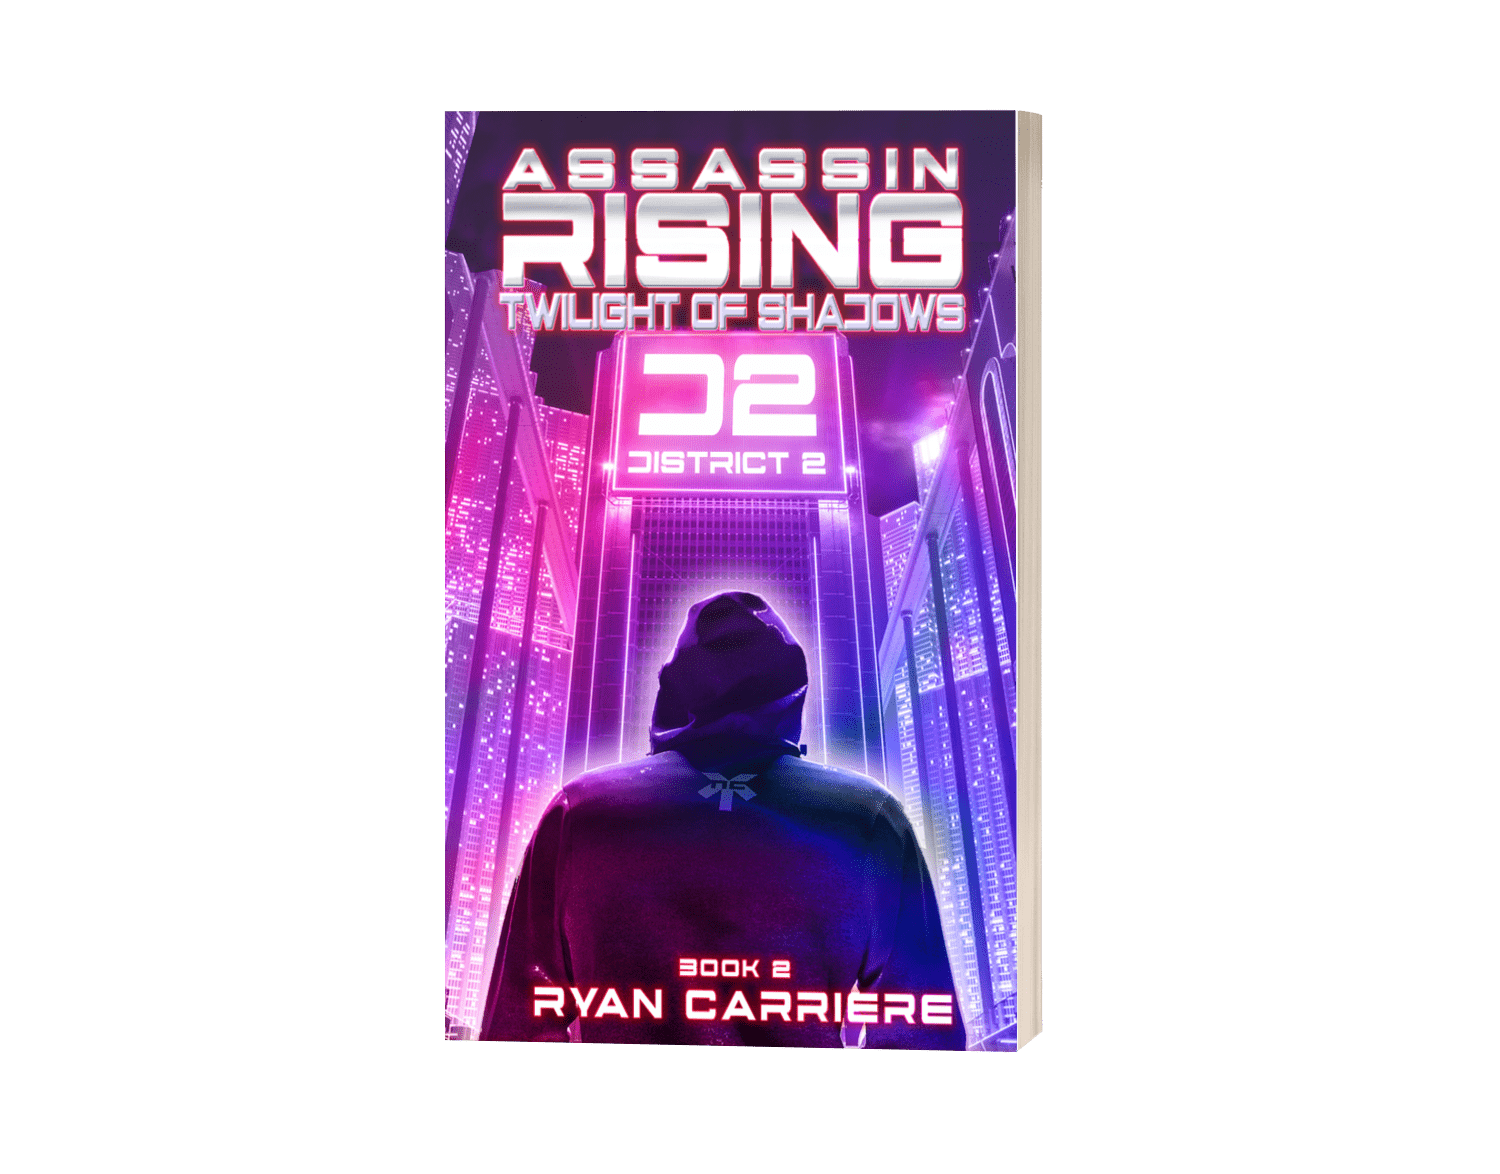 Books,ryan carriere,heroes of atlantis,assassin rising, Books, Ryan Carriere